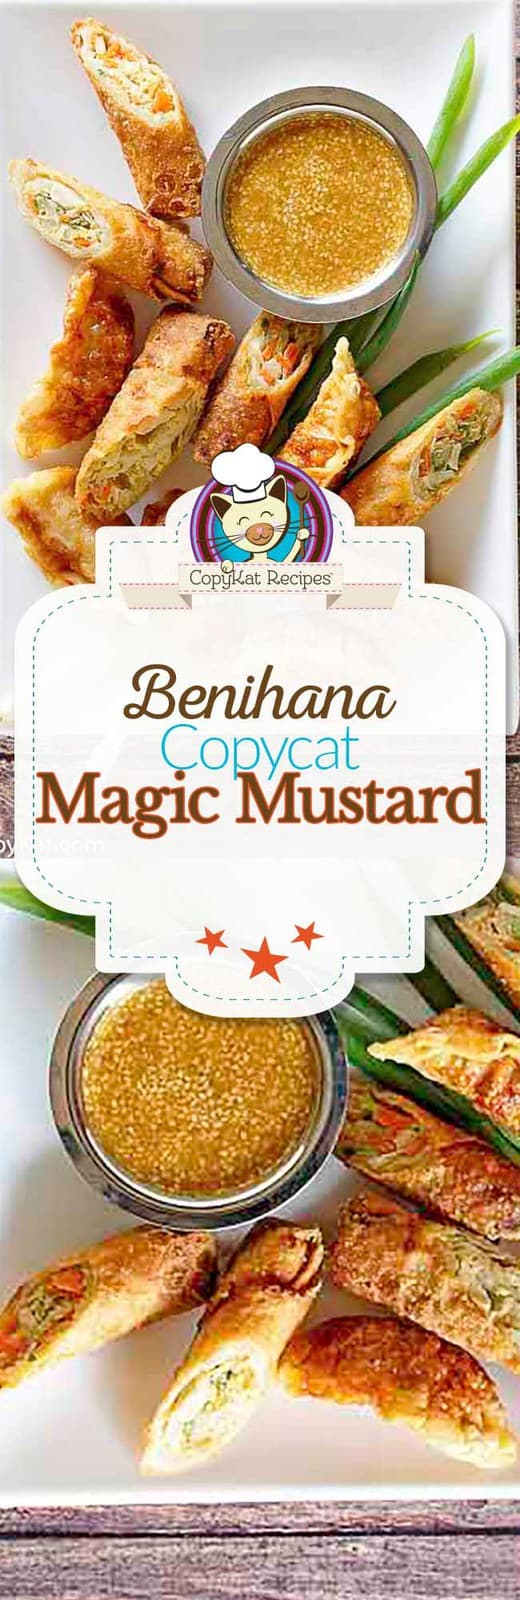 You can recreate Benihana Magic Mustard at home with a few simple ingredients.